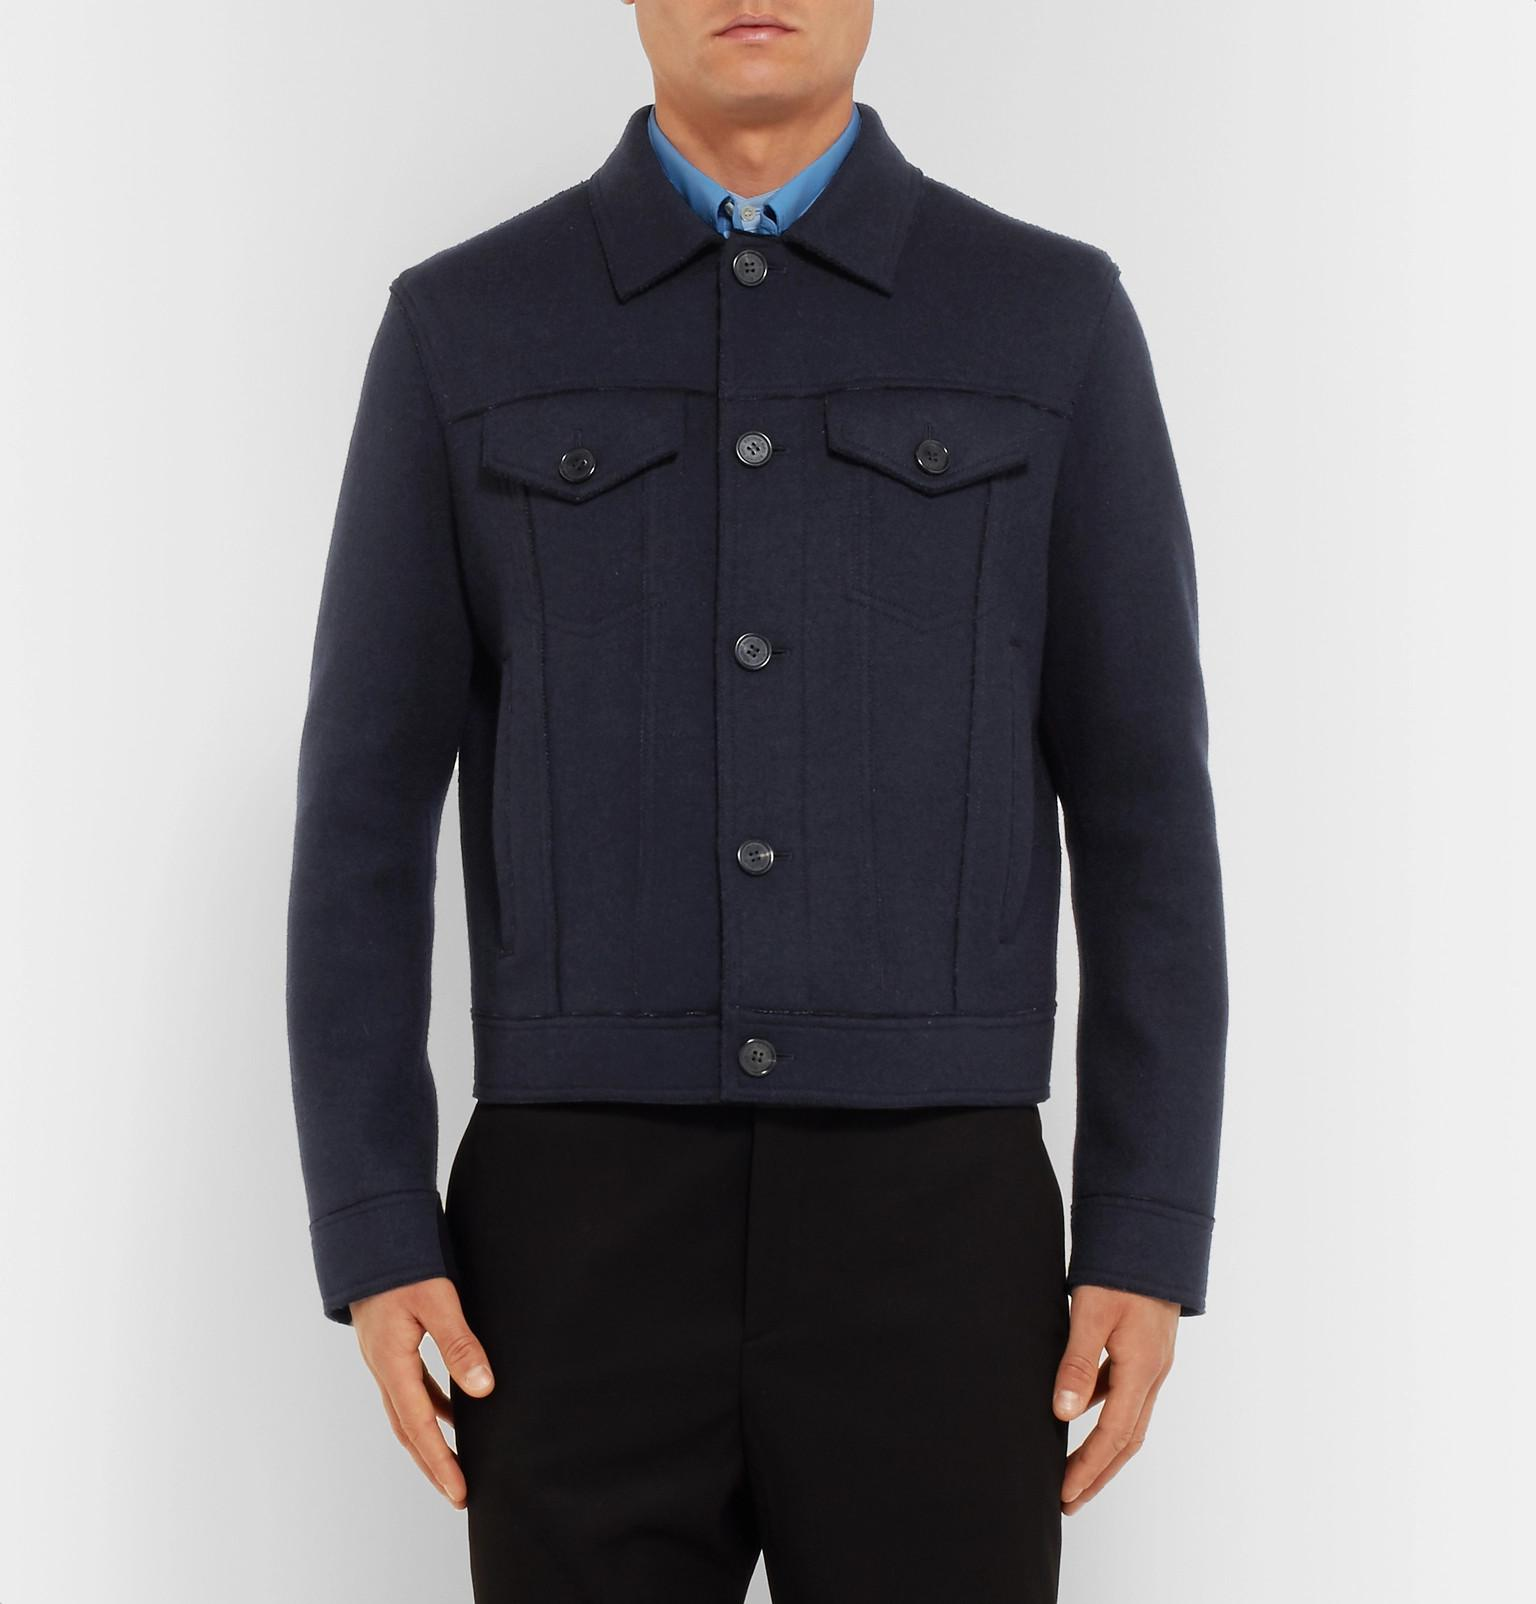 a5575039bf neil-barrett-navy-Wool-blend-Trucker-Jacket.jpeg